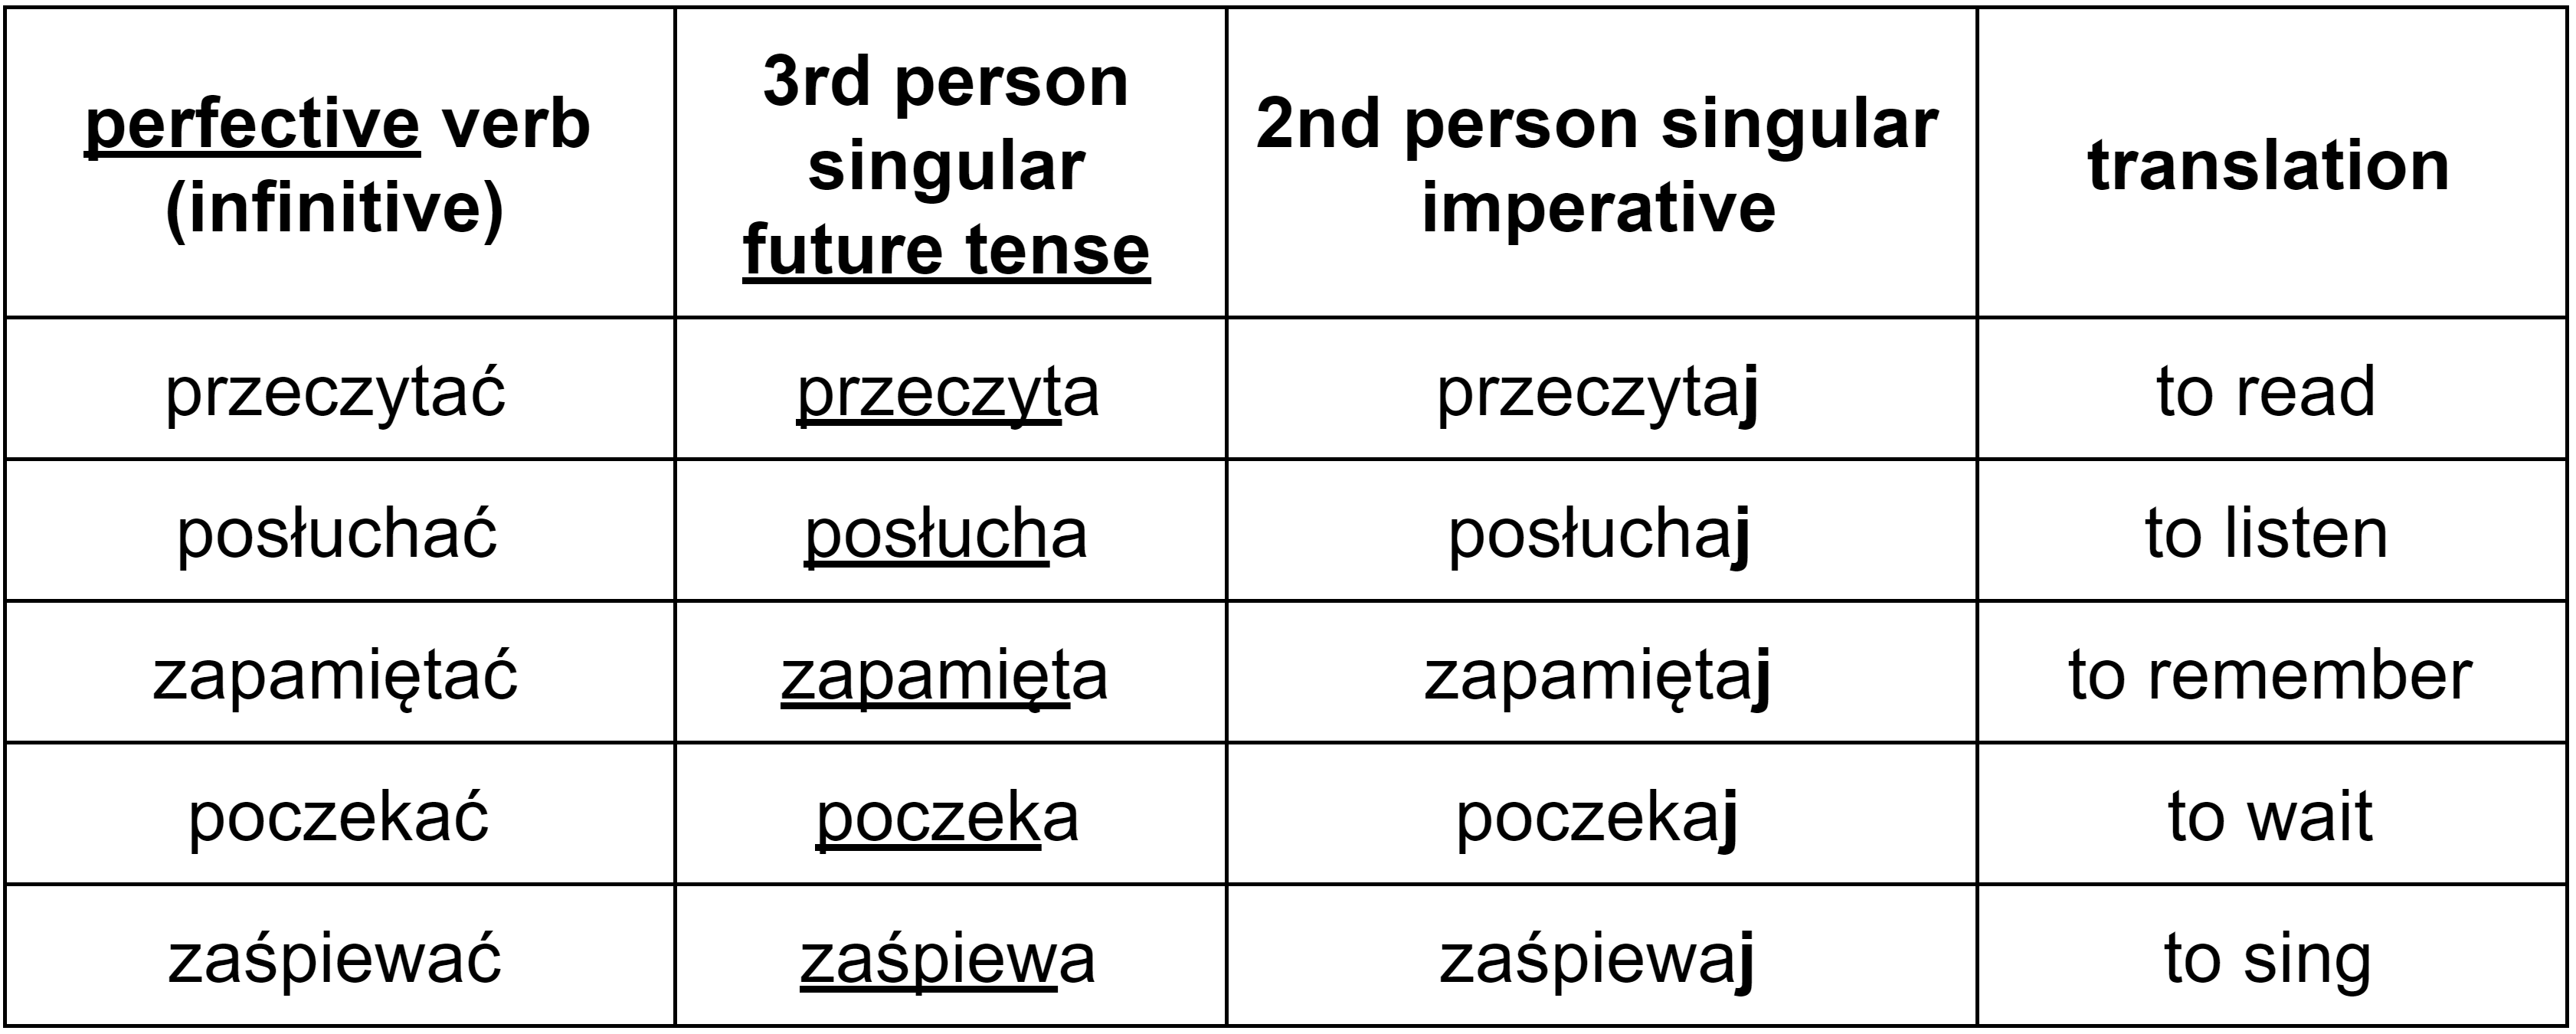 Polish perfective imperative verbs in the second person singular with the -j ending table